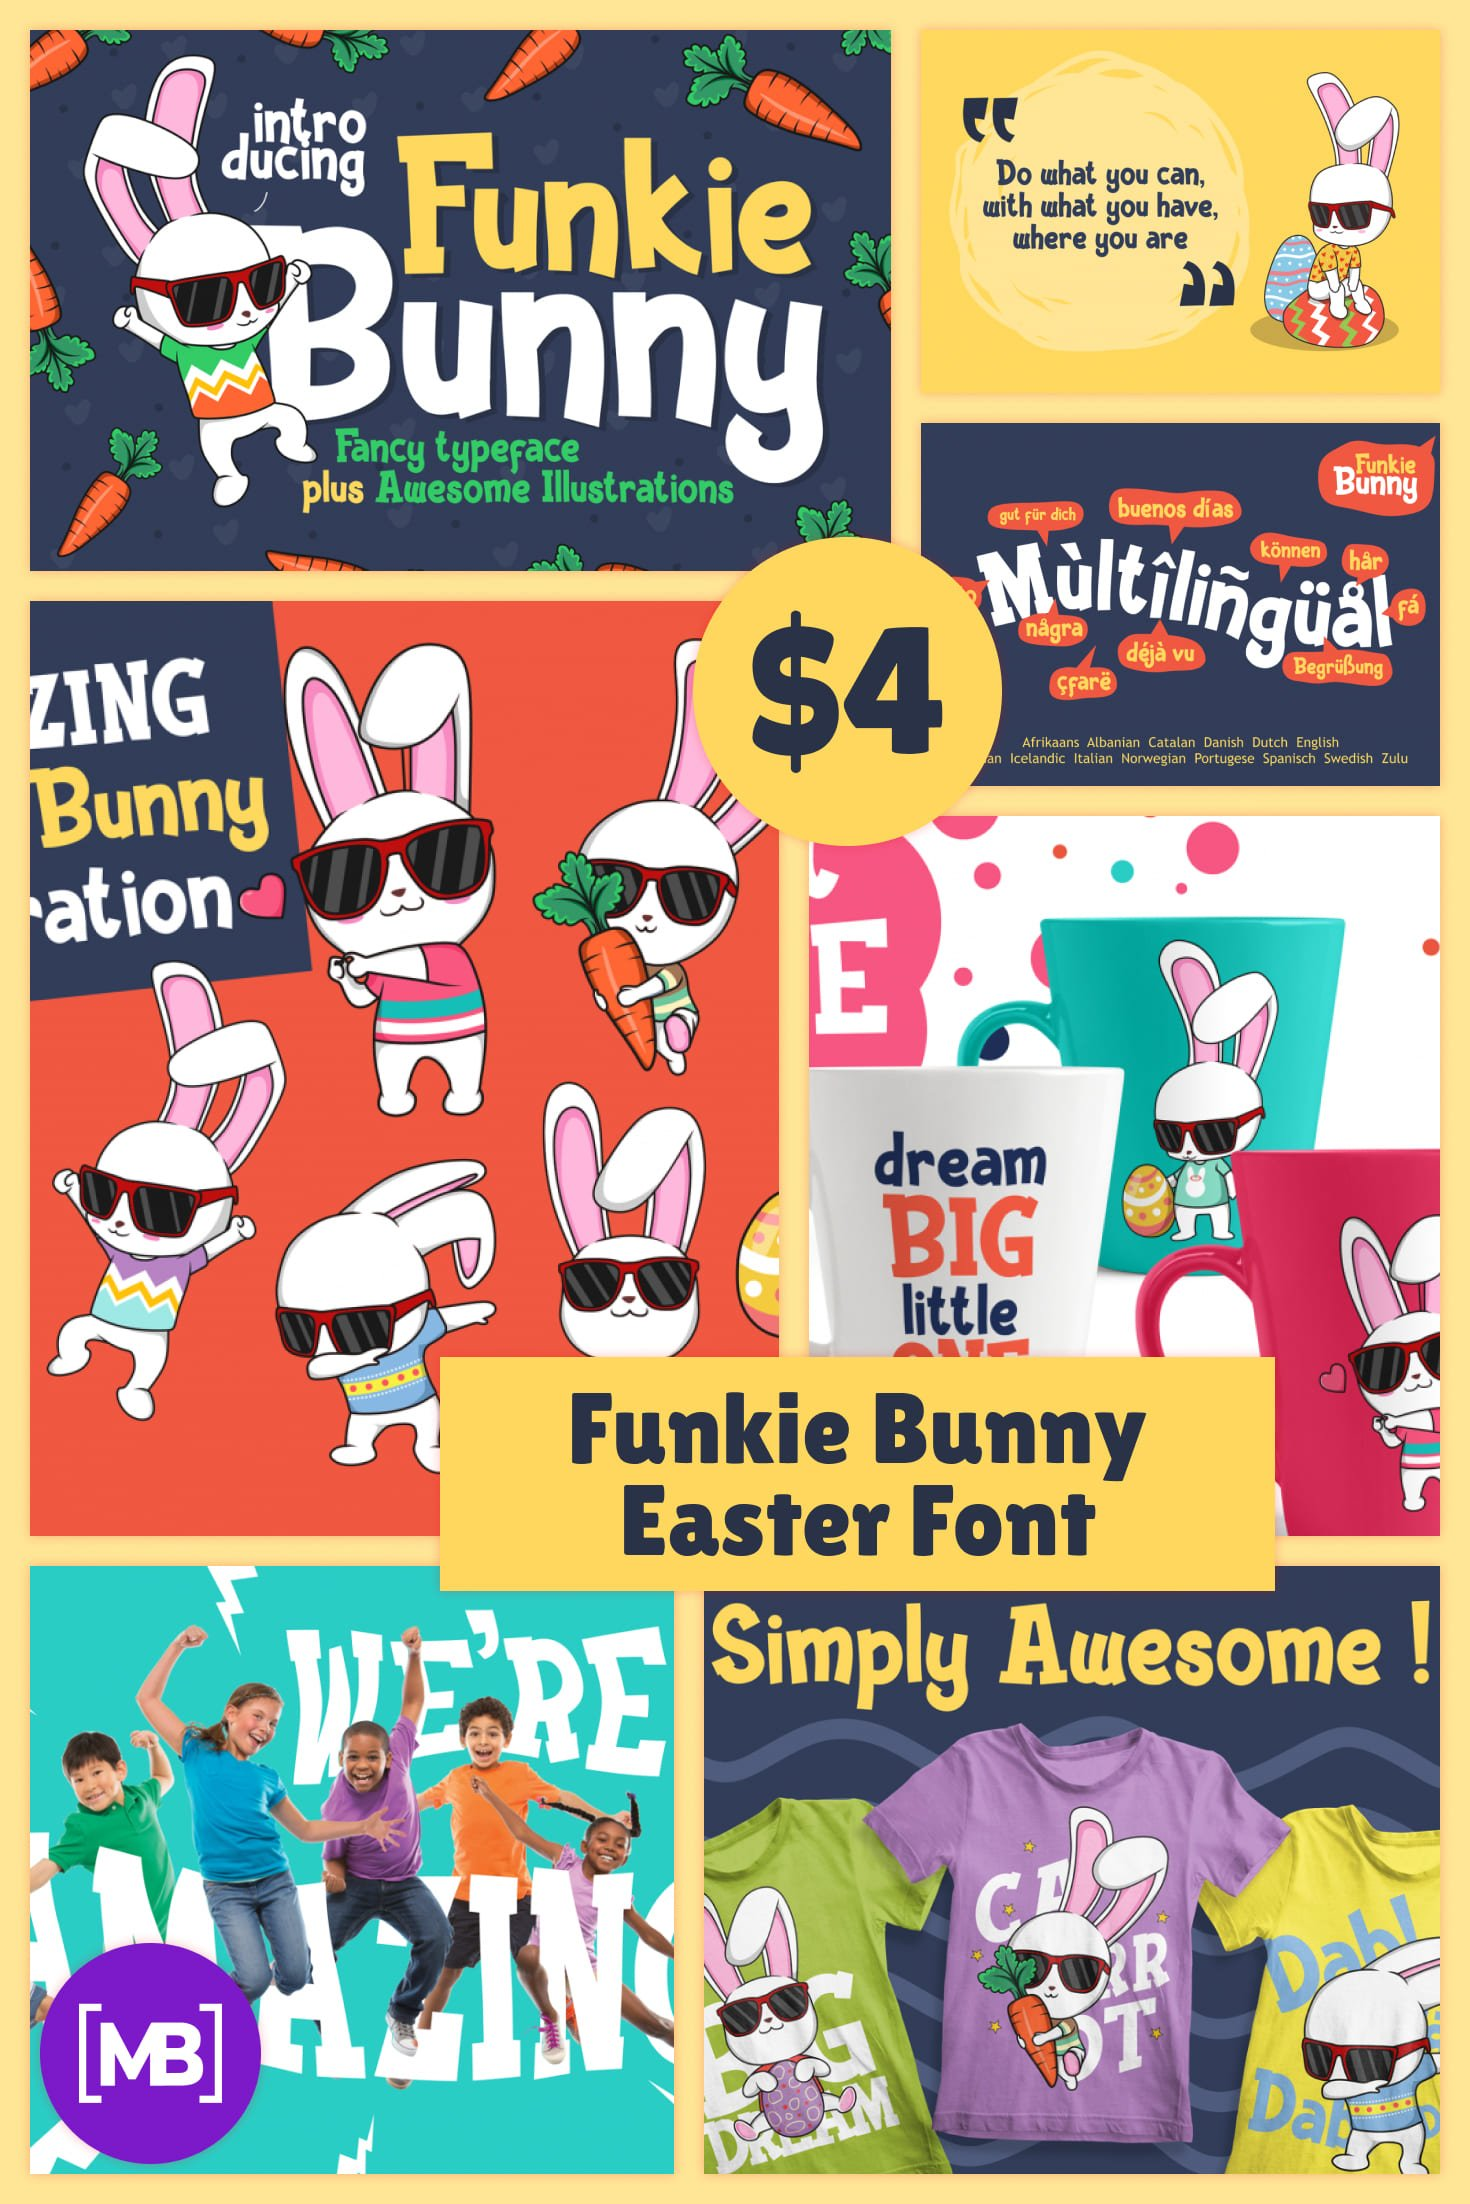 Easter Font - Funkie Bunny Font for Joyful Easter Decorations. Only $4. Collage Image.